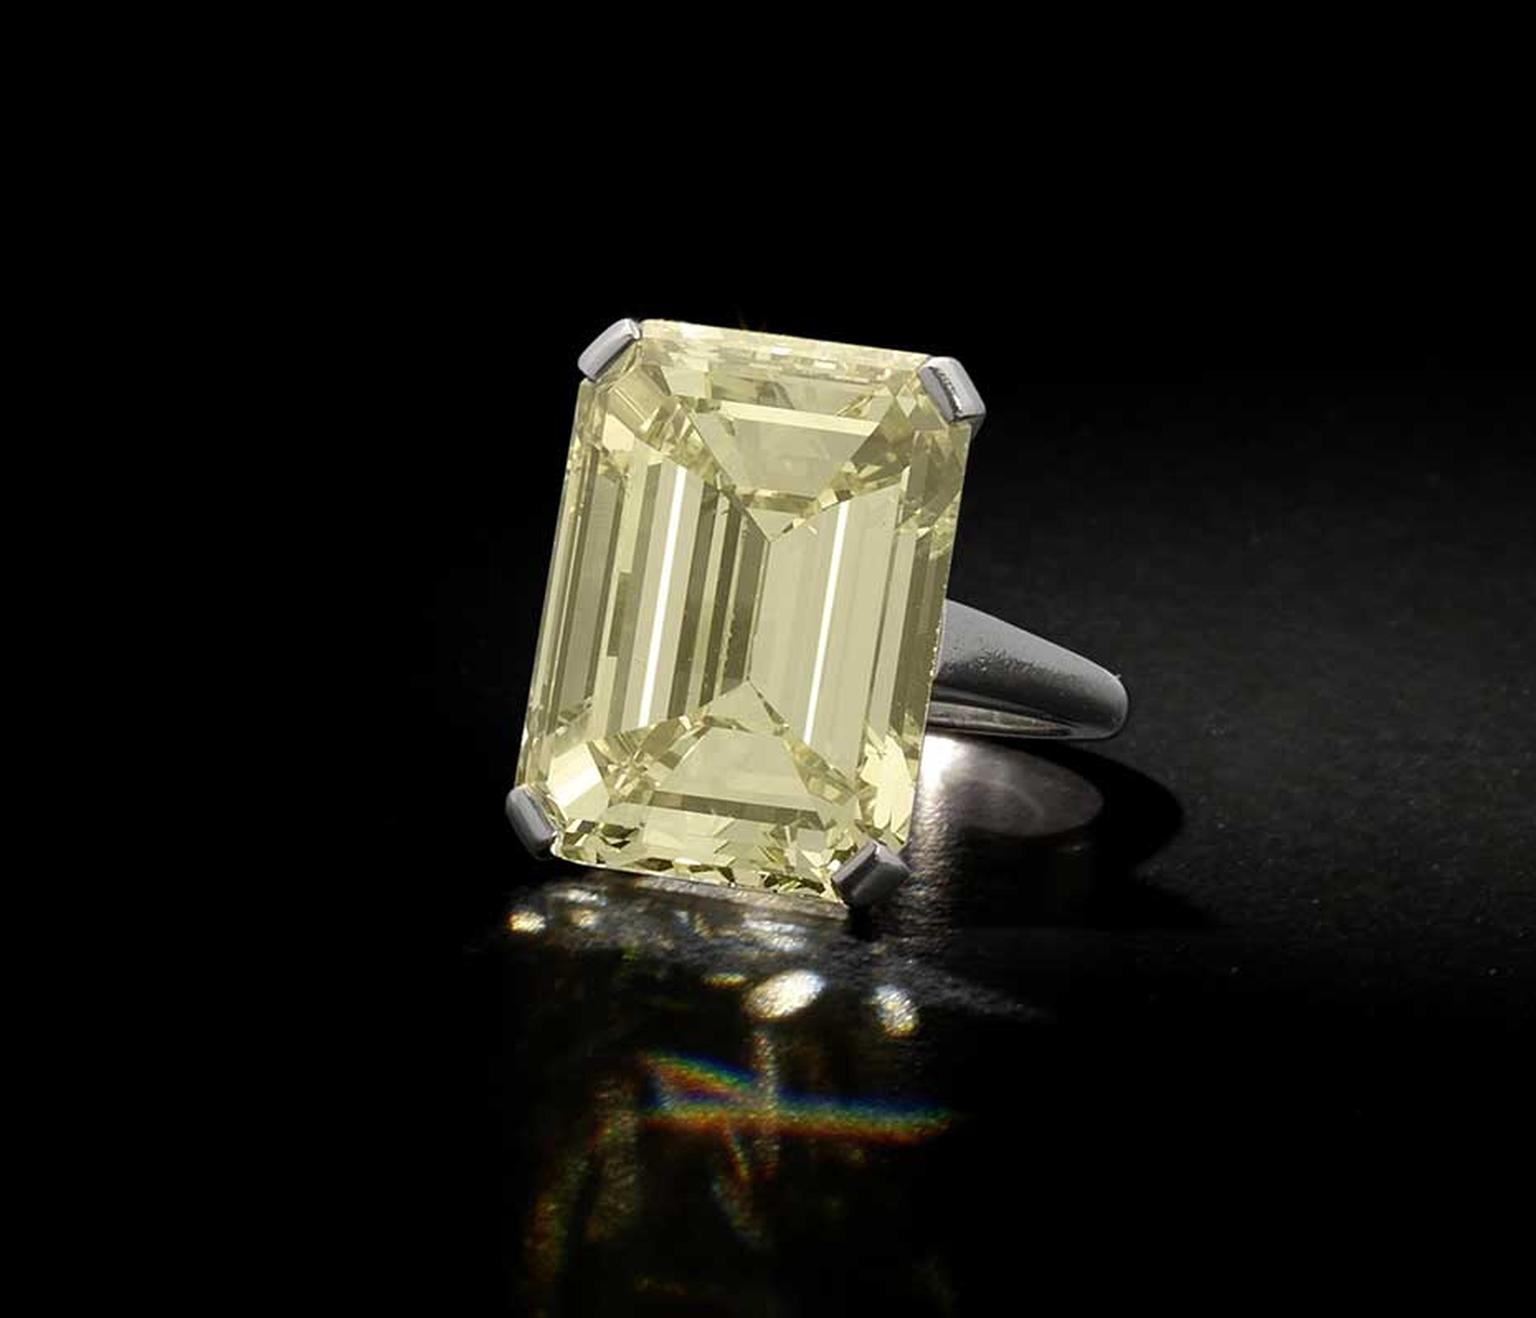 Lot 187, a yellow diamond ring, set with a step-cut Fancy Yellow diamond weighing 24.59ct (estimate: £150,000-£250,000)